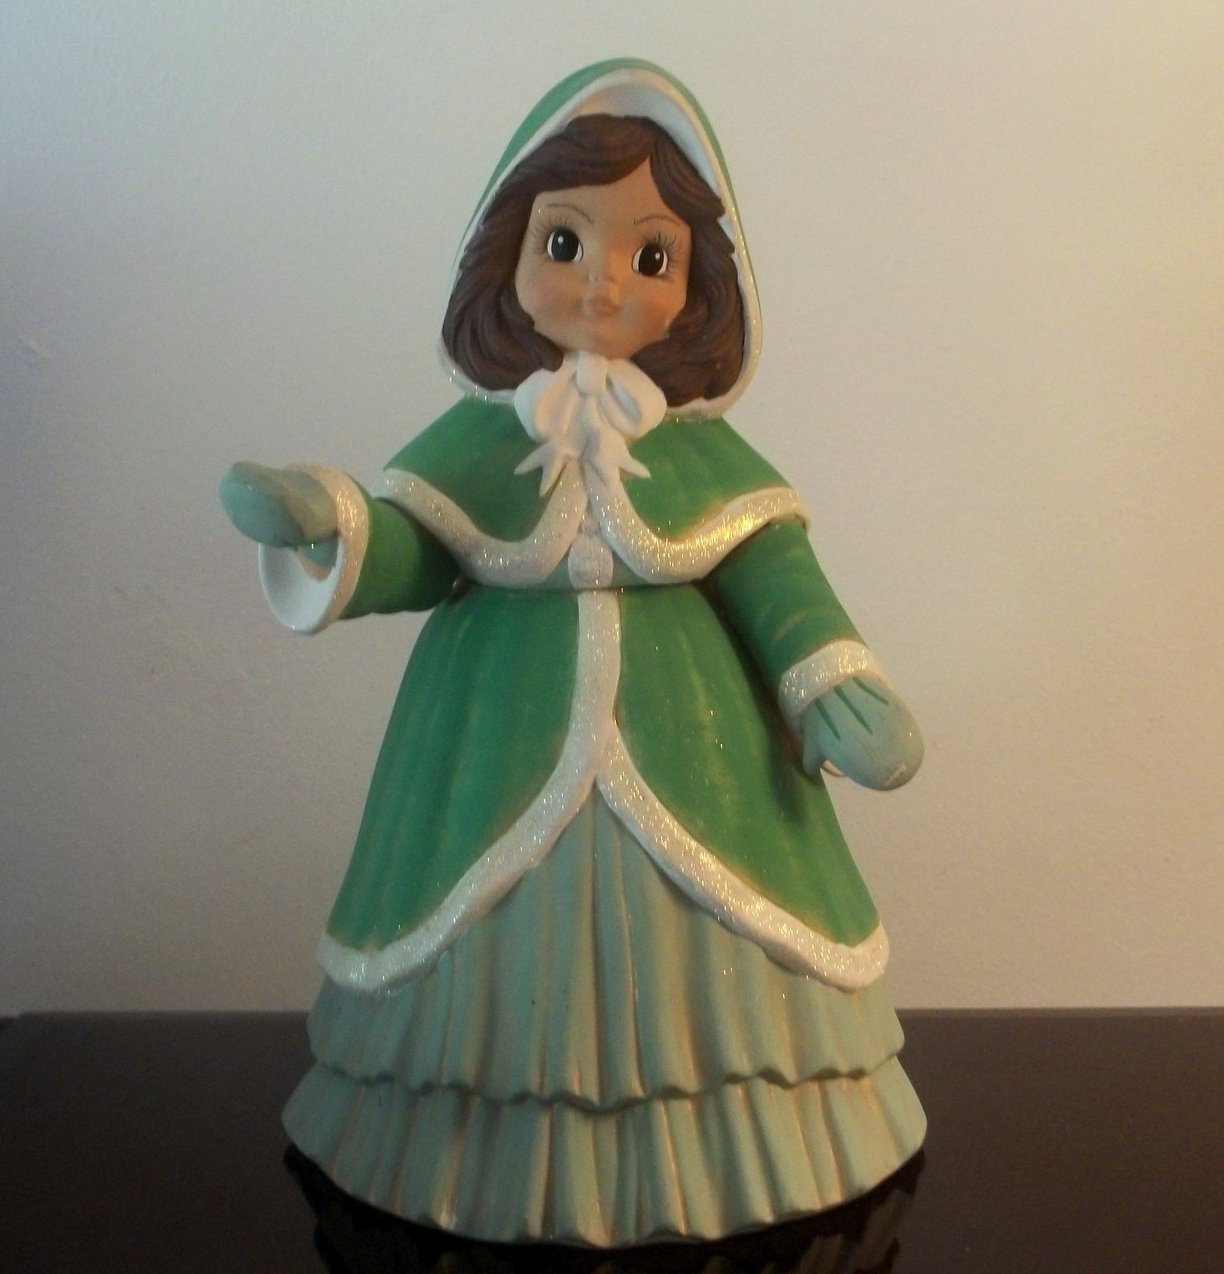 Vintage Christmas Caroler Girl Hollie 12 inches Sugarplum Collection